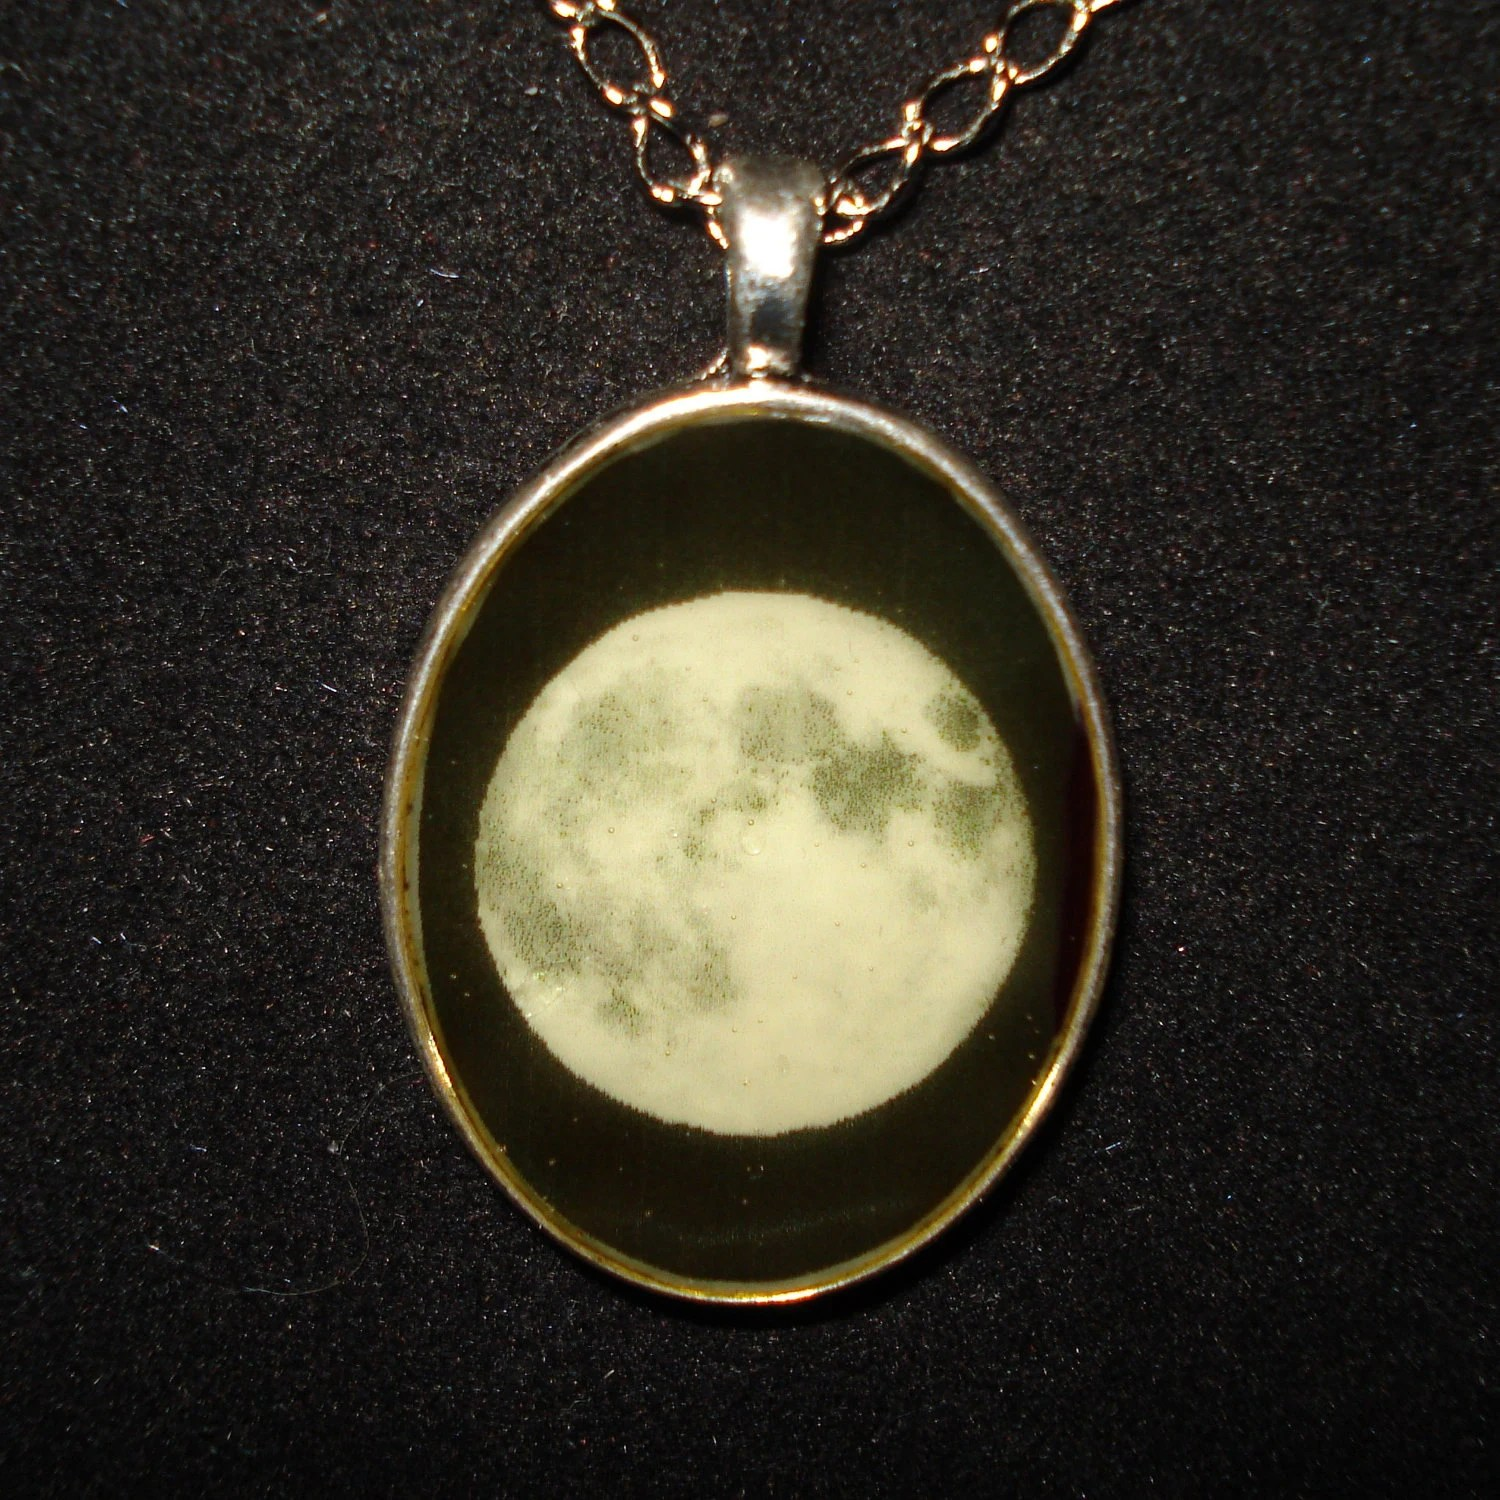 Full Moon Necklace Pendant Glow In The Dark